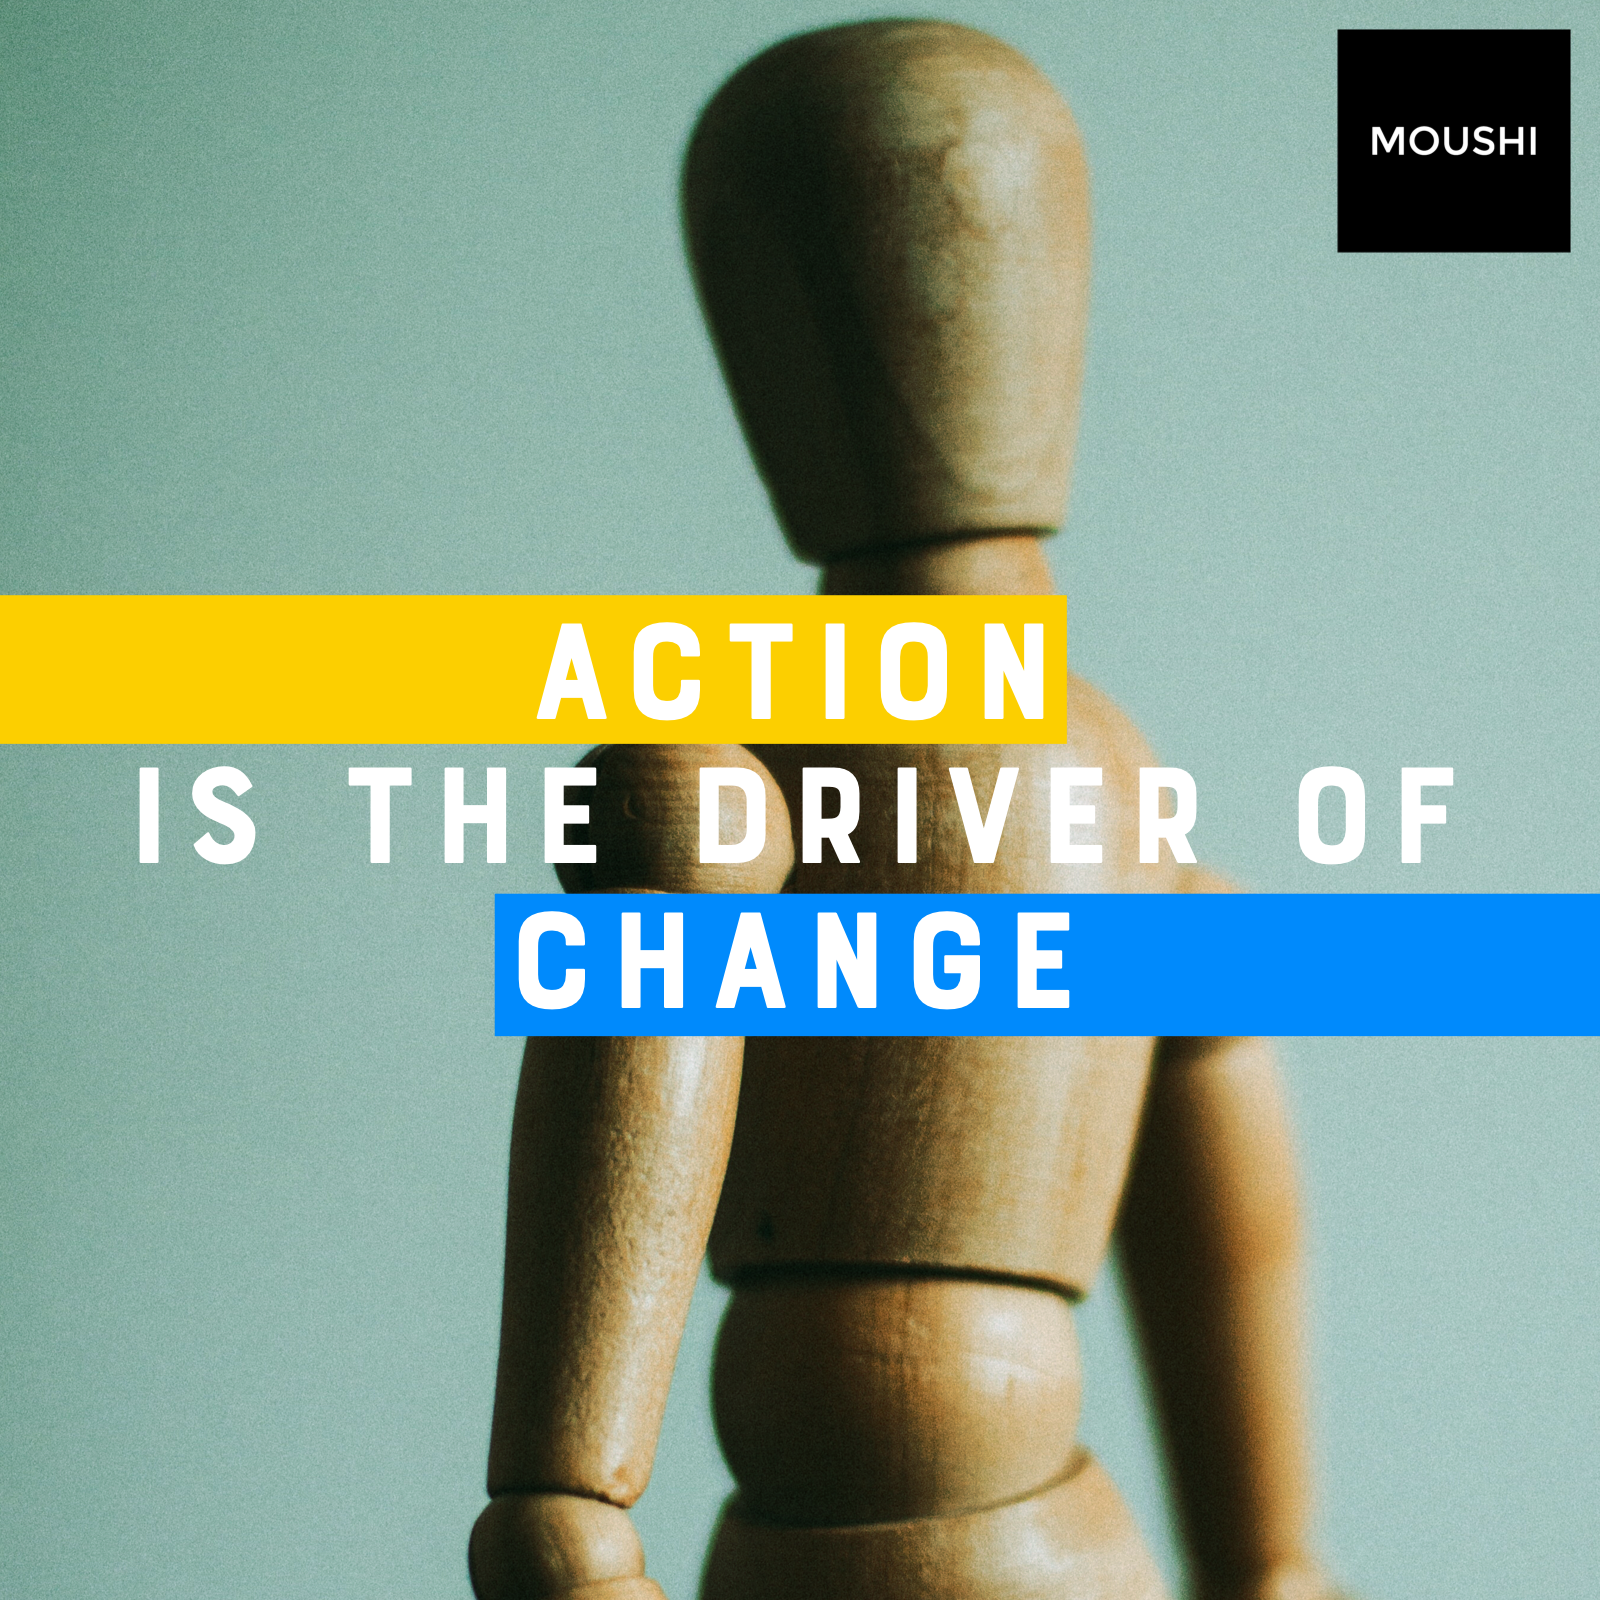 Action is the driver of change